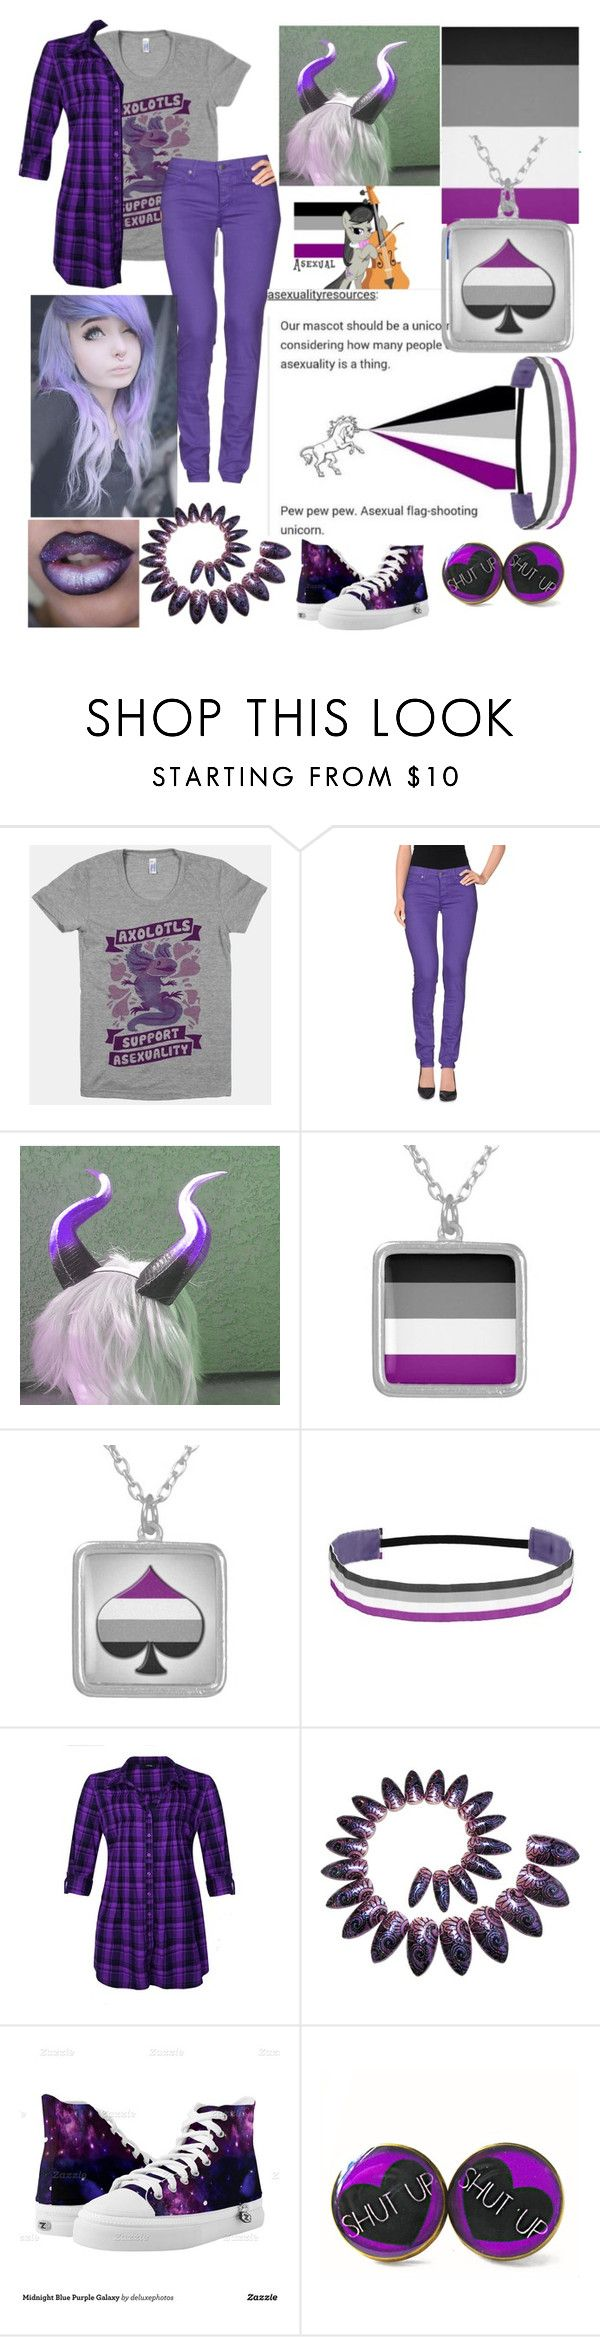 """asexual pride <3"" by xenomorphs4life ❤ liked on Polyvore featuring Cheap Monday"